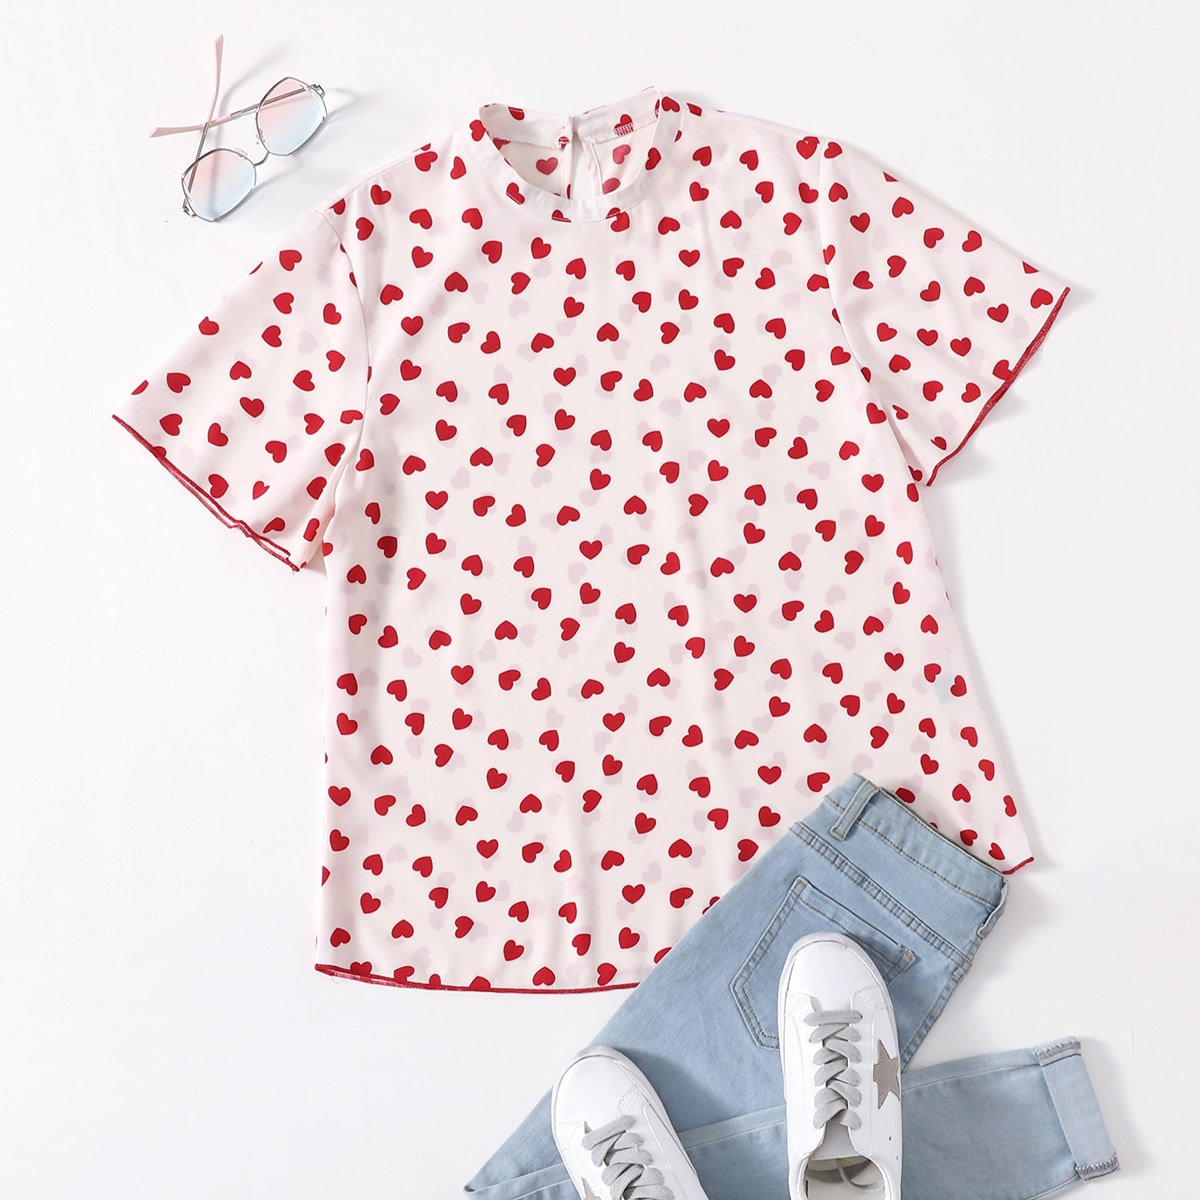 SHEIN Casual Hart Grote maat blouse Contrasterende Zomen